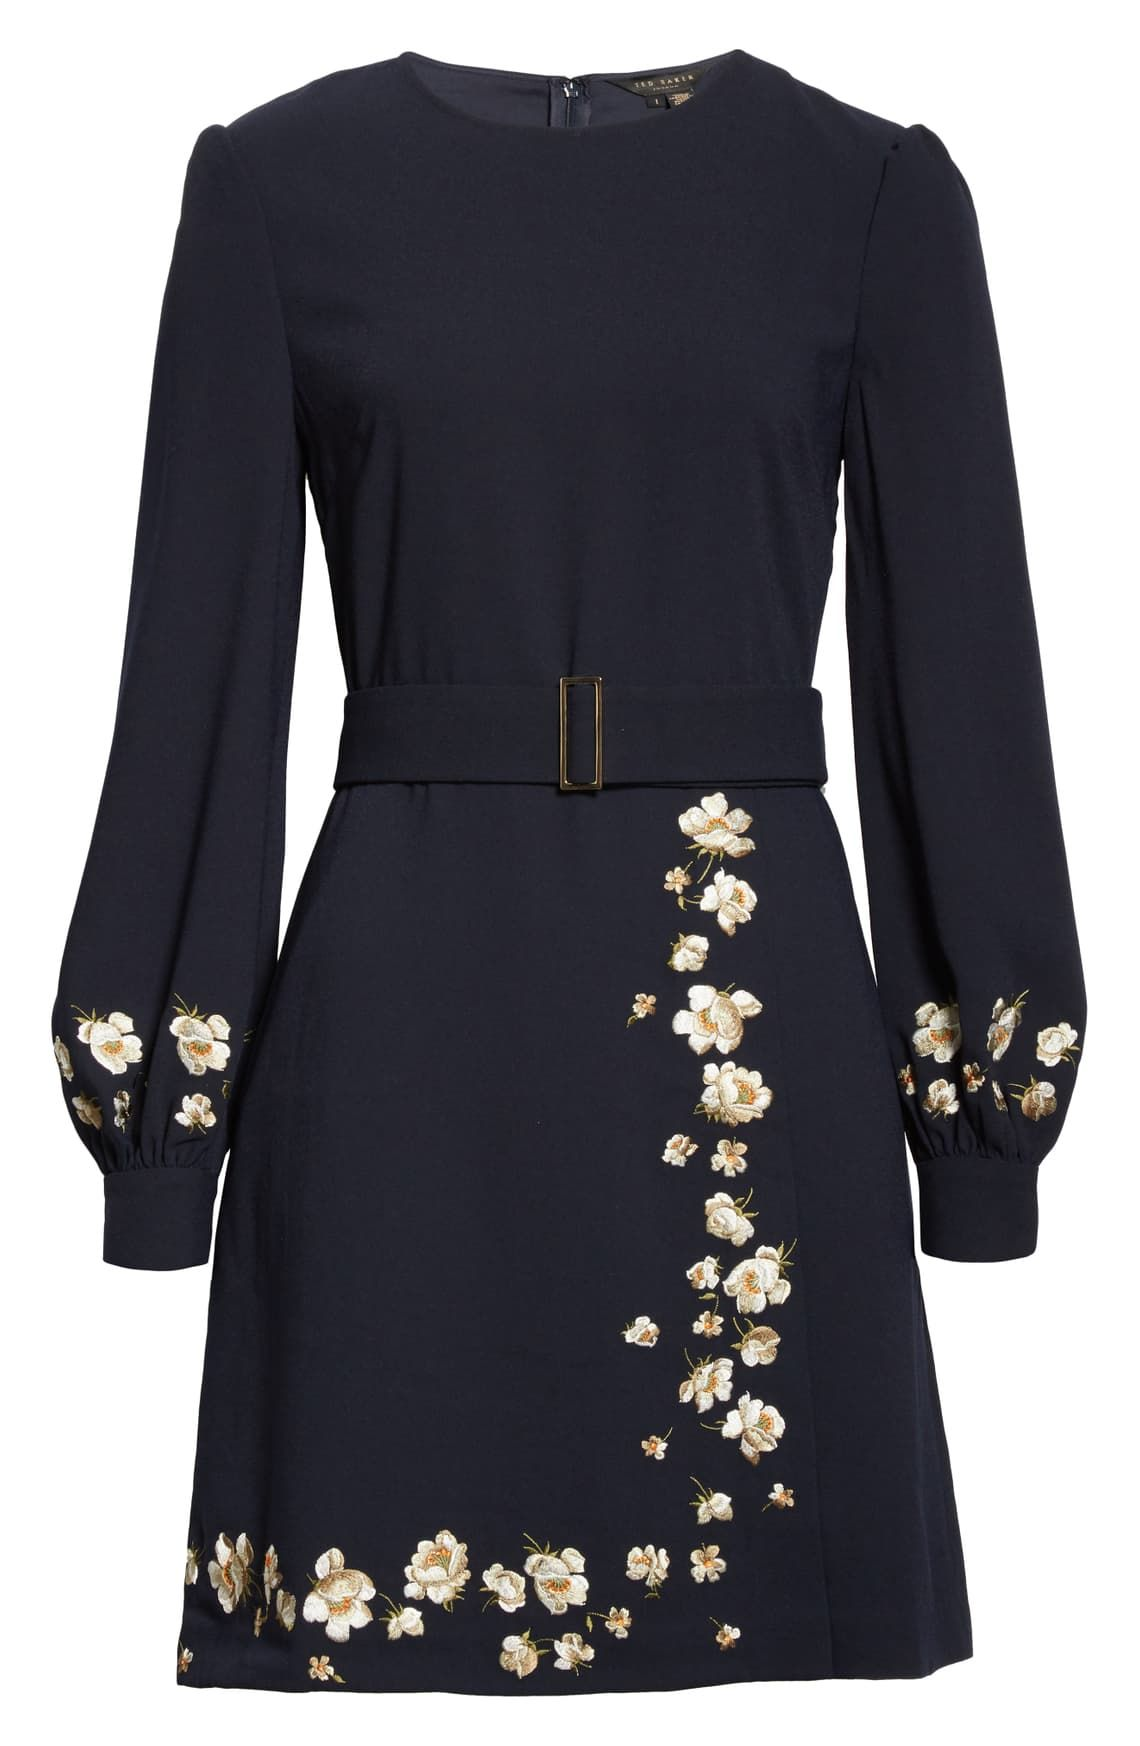 Ted Baker London Pearl Floral Long Sleeve Dress Nordstrom Long Sleeve Floral Dress Long Sleeve Dress Dresses [ 1746 x 1140 Pixel ]